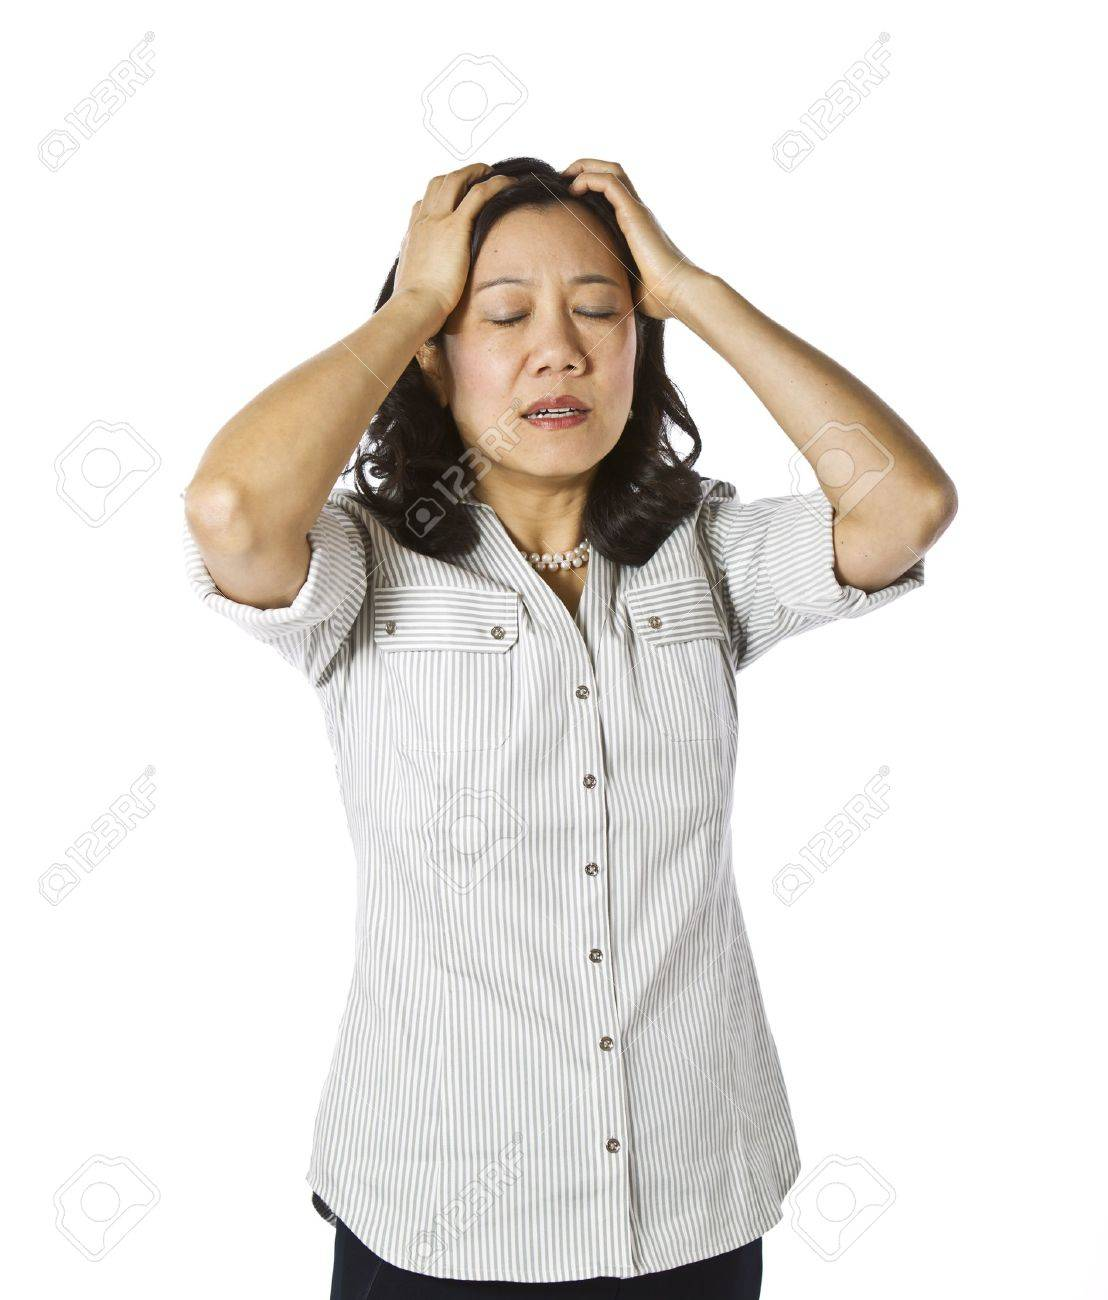 Asian women expressing frustration dressed in casual work clothing on white background Stock Photo - 12178485